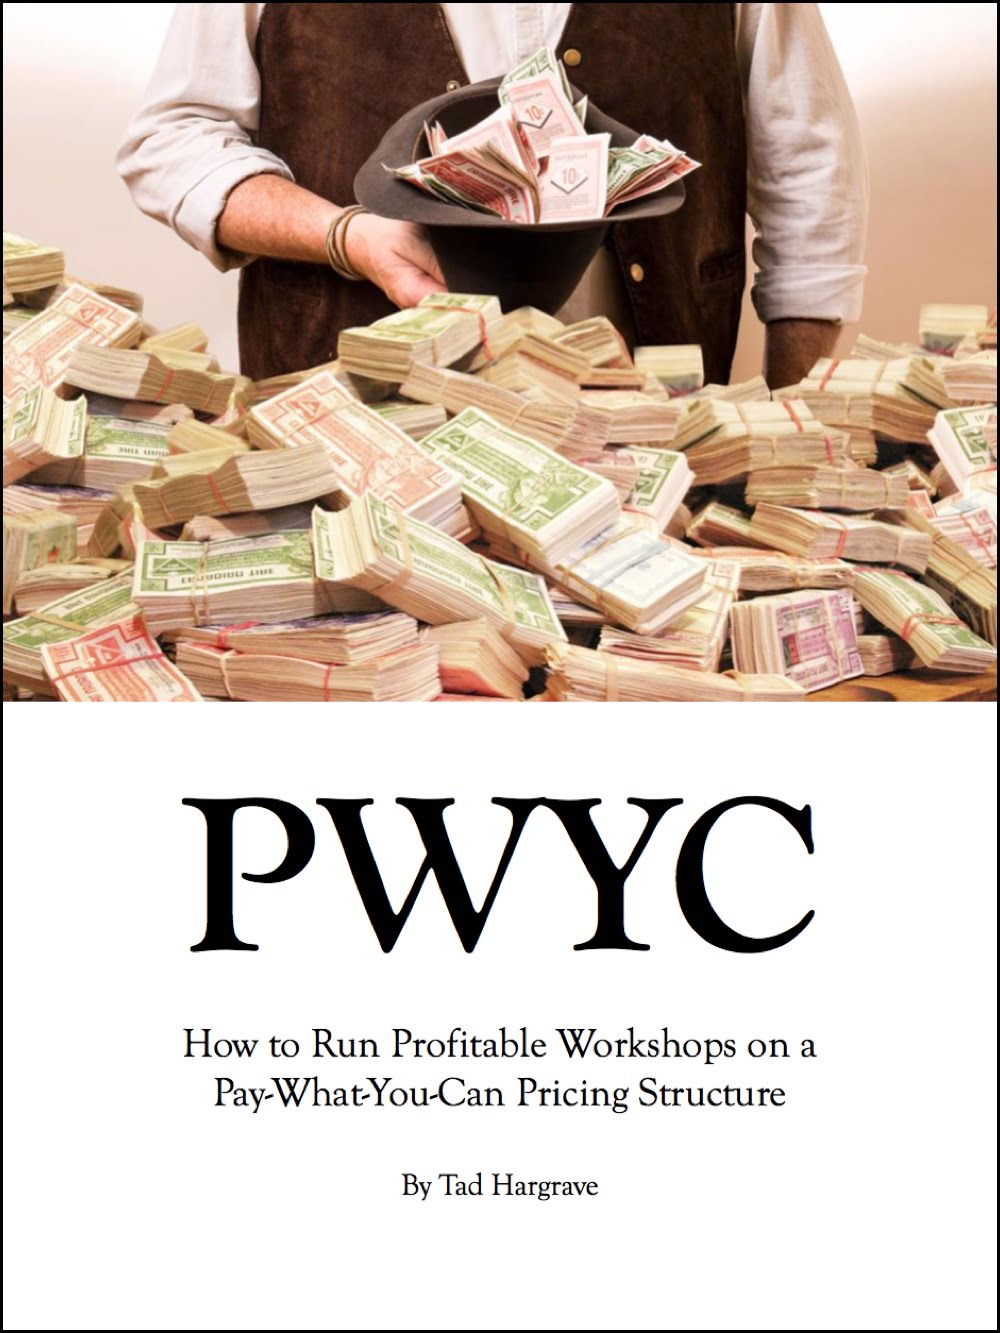 PWYC: How to Run Profitable Workshops on a Pay-What-You-Can Pricing Structure